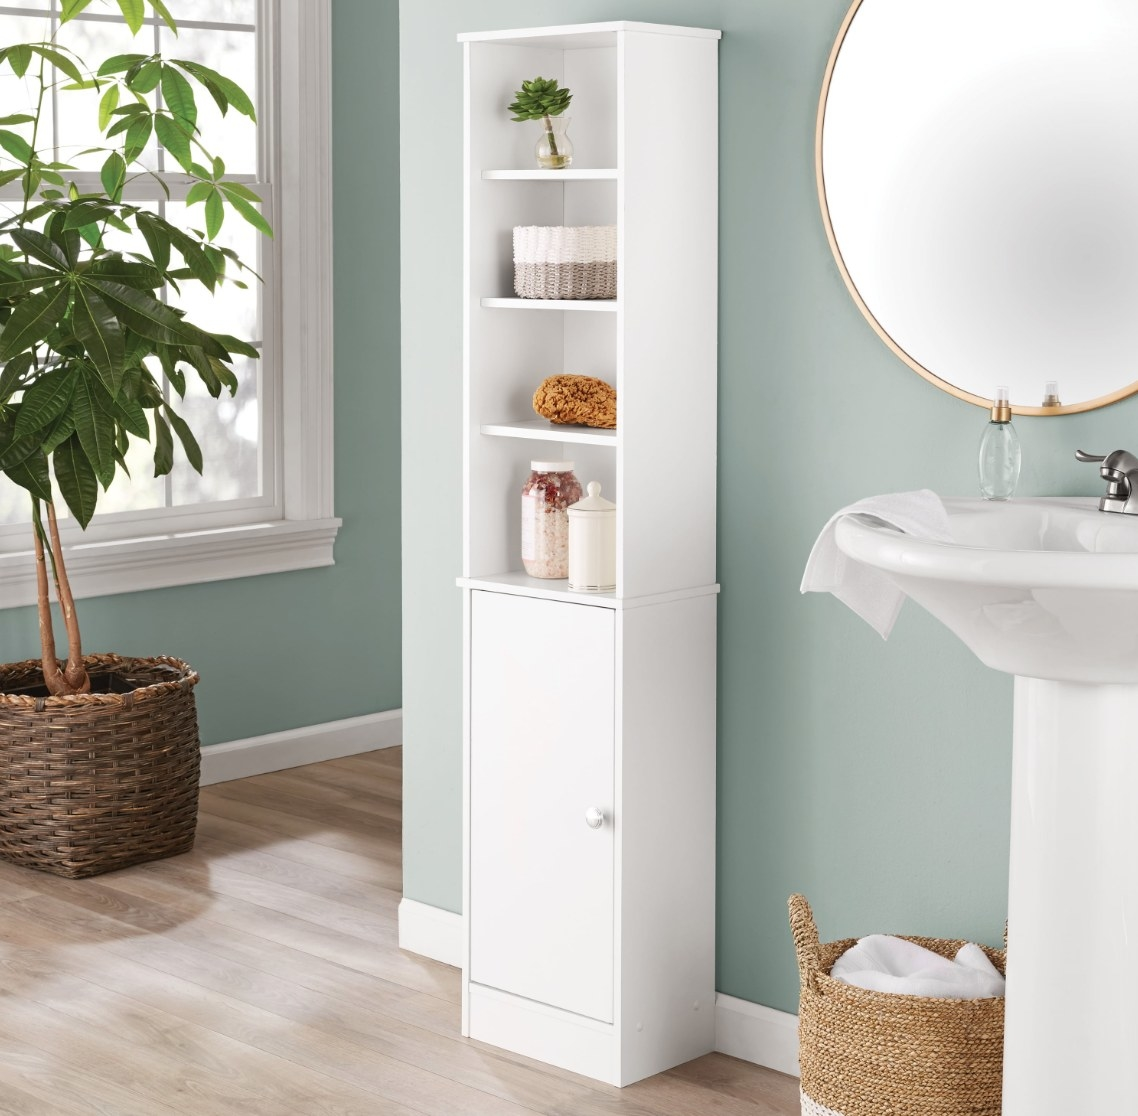 The bathroom storage linen tower in white